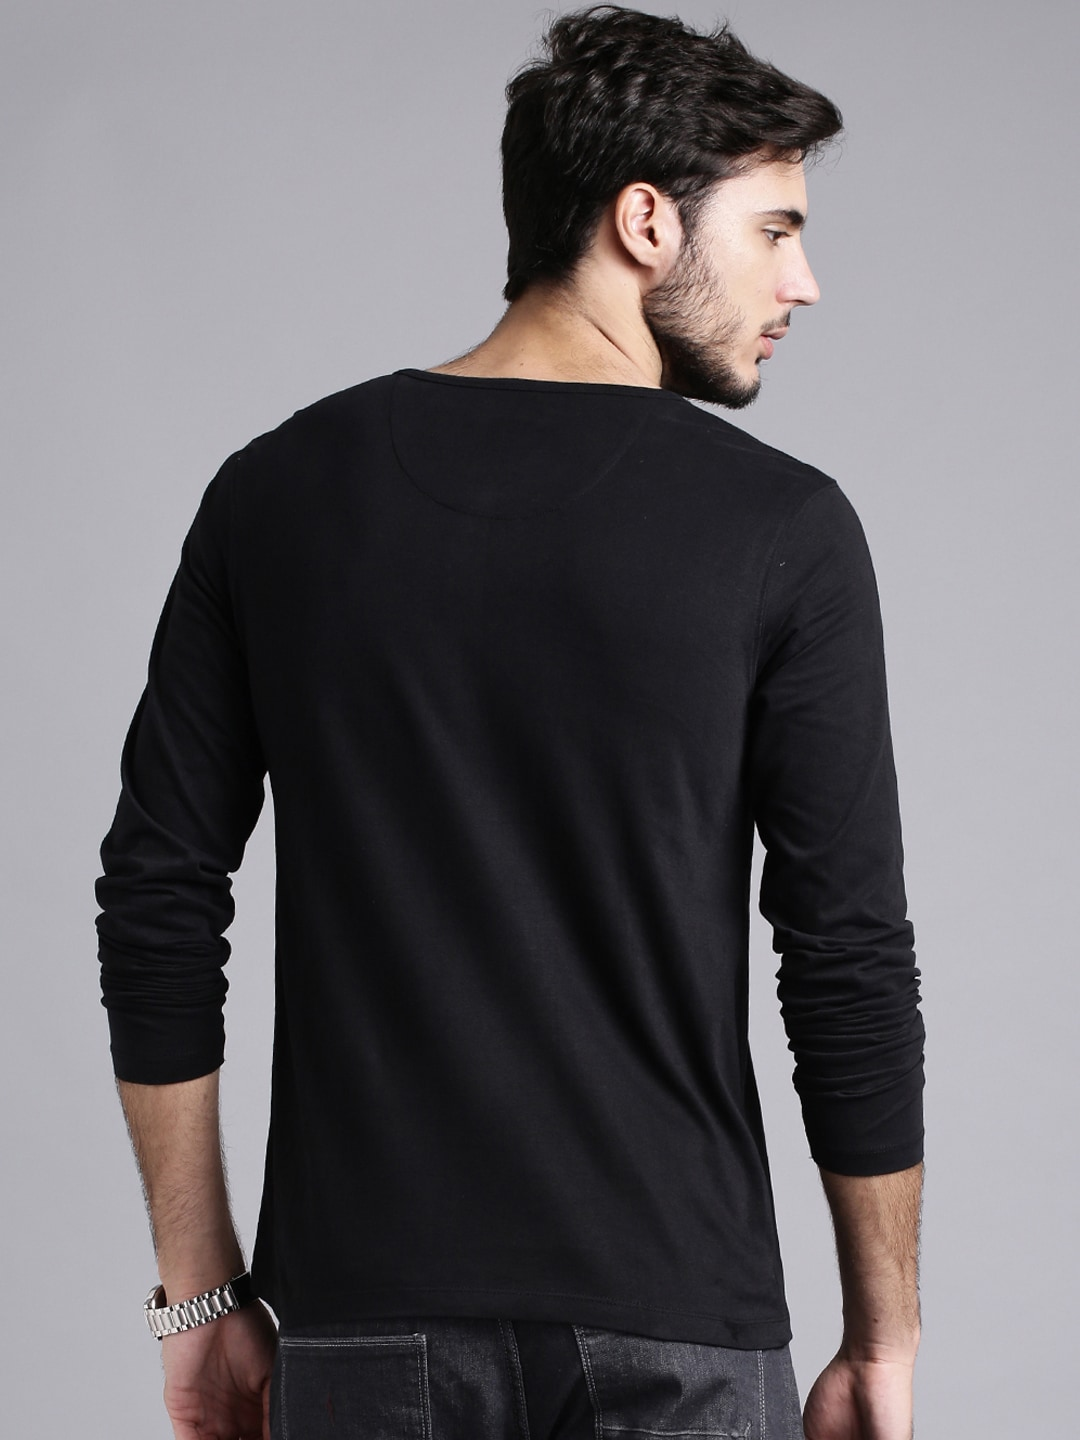 Black t shirt man - Black T Shirt Man 55